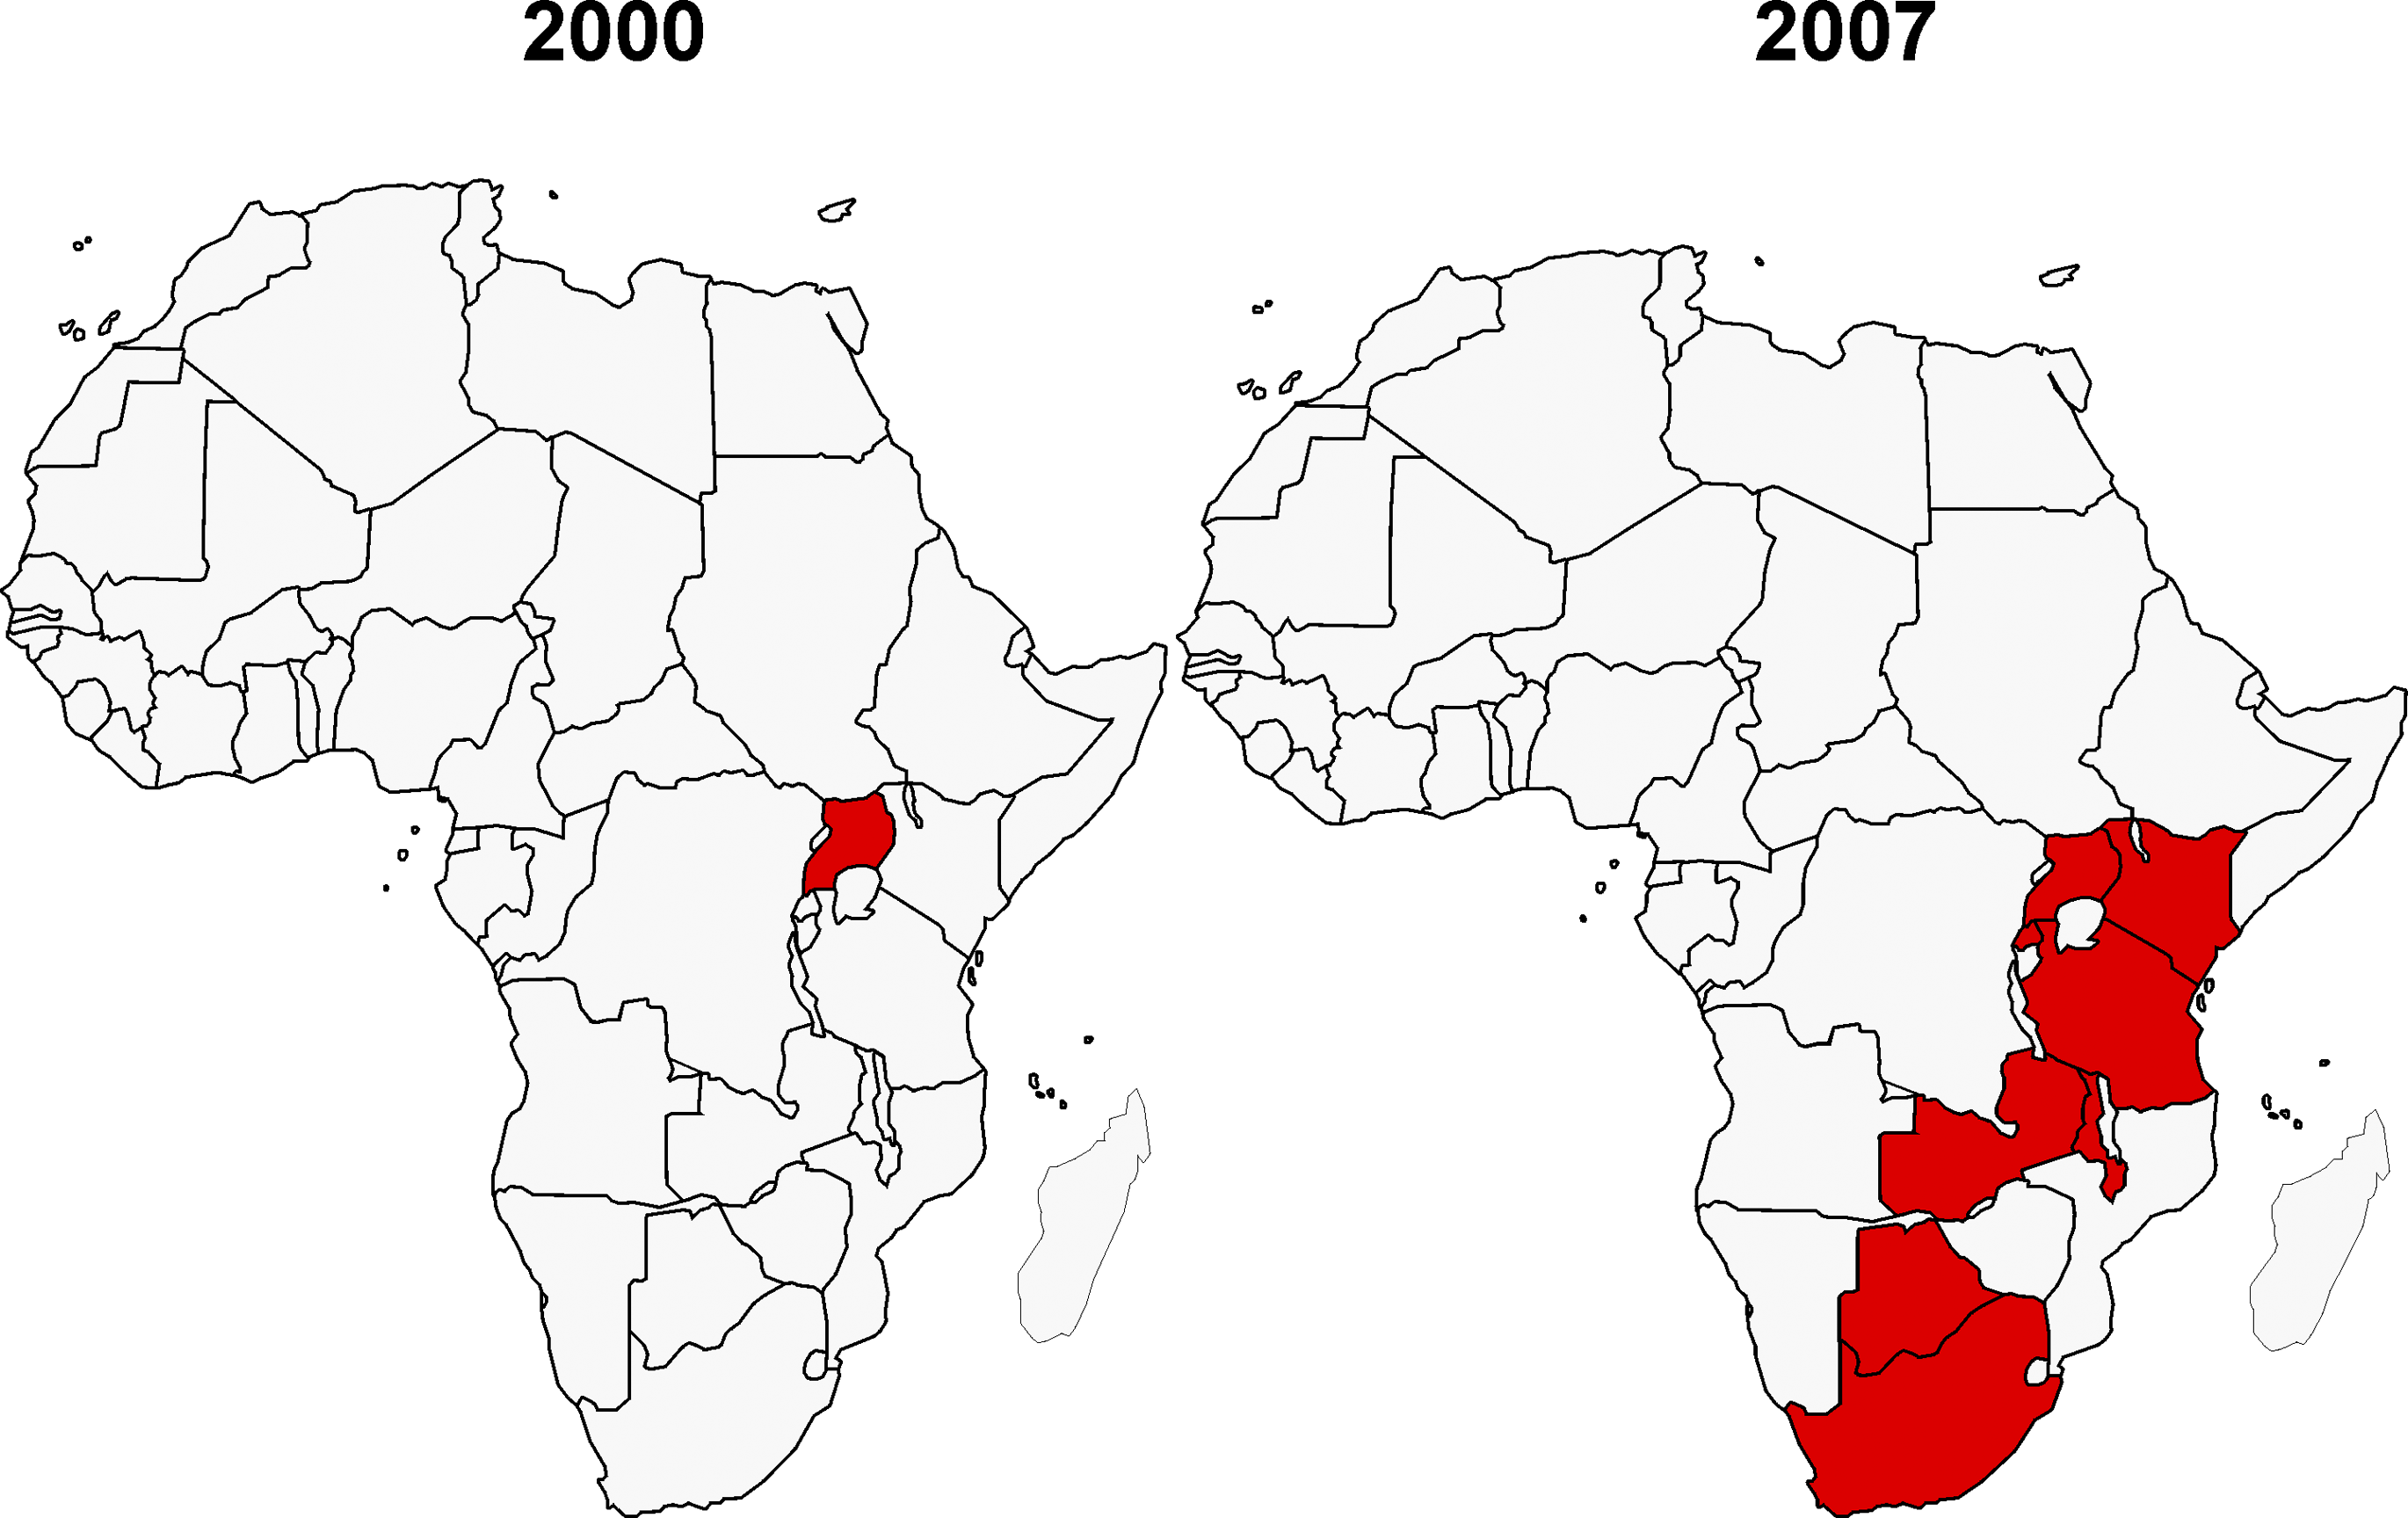 African Countries Participating in HIV Vaccine Trials